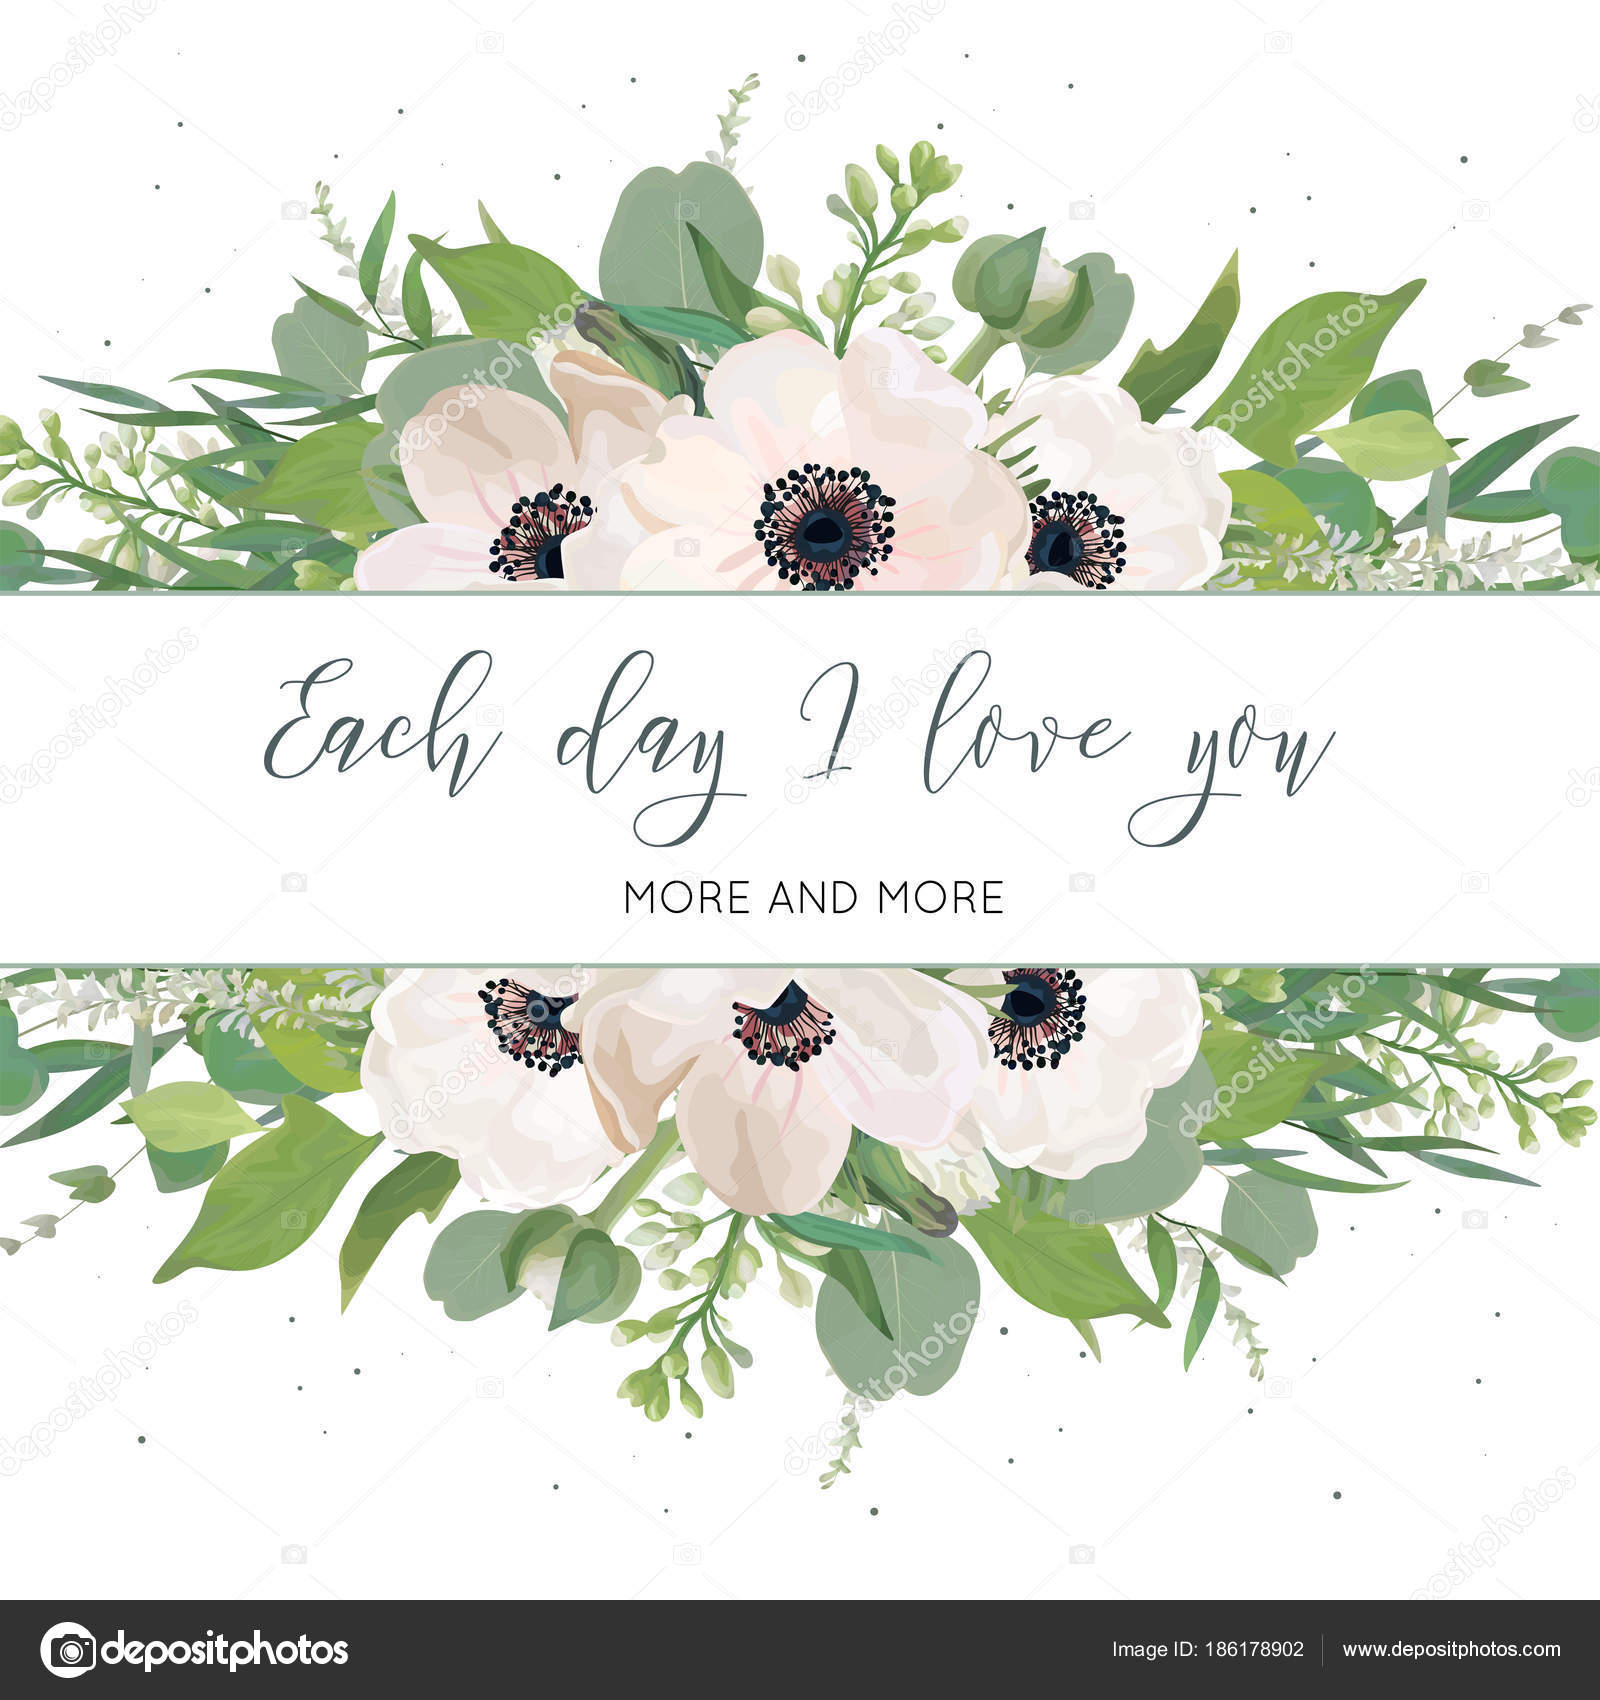 Eucalyptus Leaves White Lilac Flowers Greenery Herbs Mix Decorative Border Romantic Rustic Wedding Invite Save The Date Template Vector By Alewiena